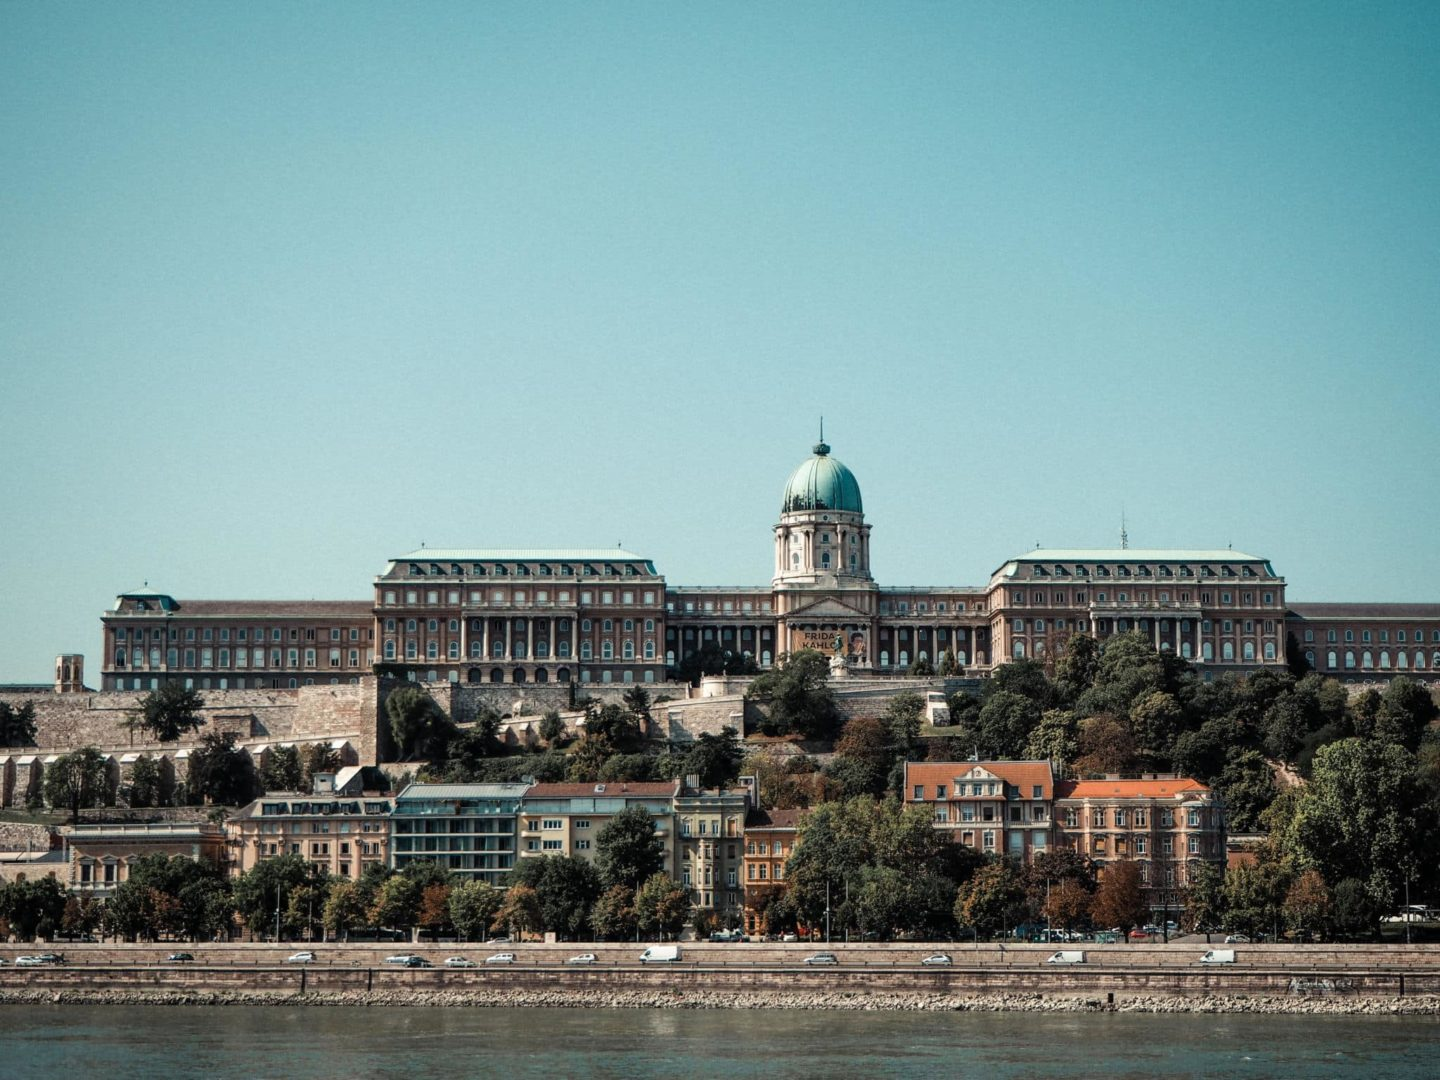 3 Day Budapest Itinerary - The Buda Palace from across the river